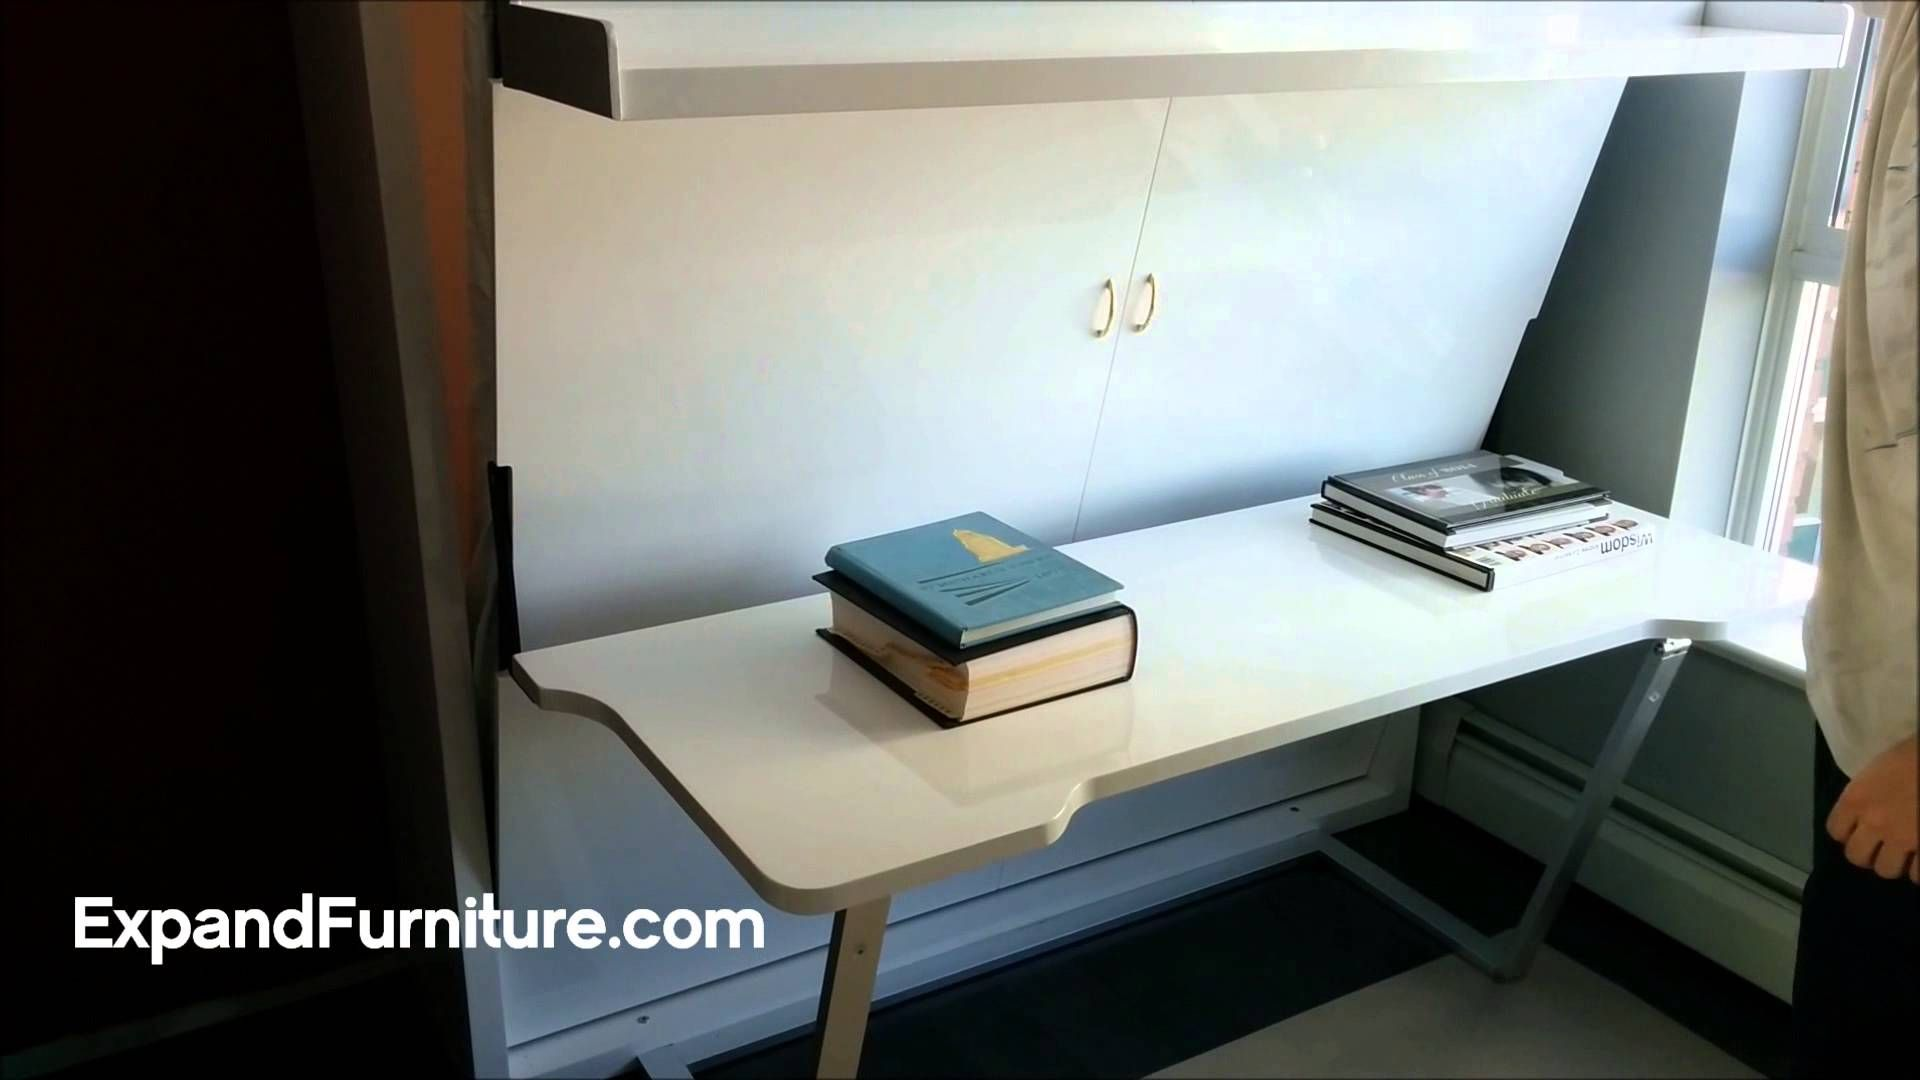 Loft bed with desk south africa  Tags green hair swarovski christian grey silhouette cameo tutorials